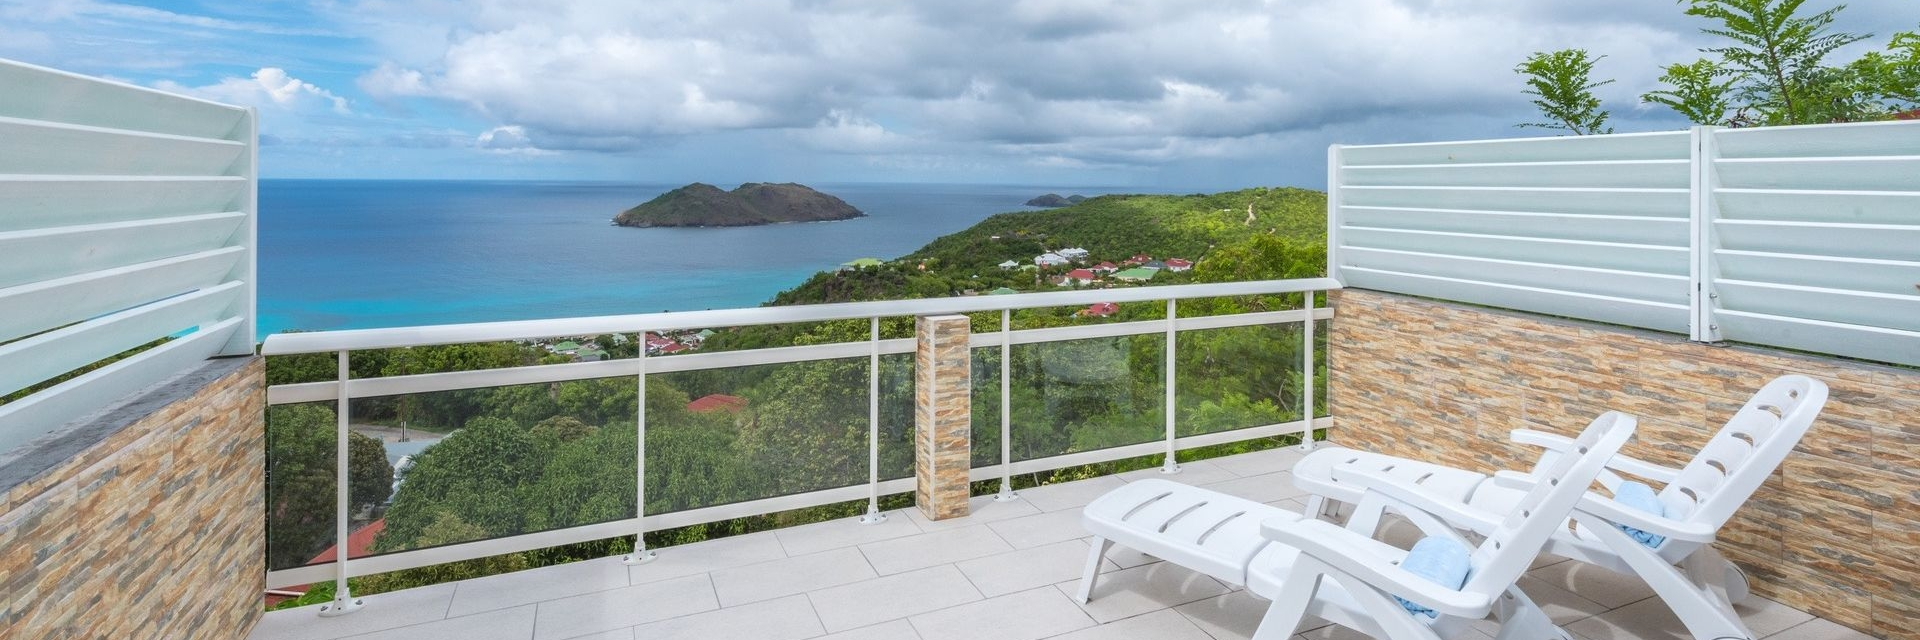 Saint Barth Villa - Bungalow Hansen 2